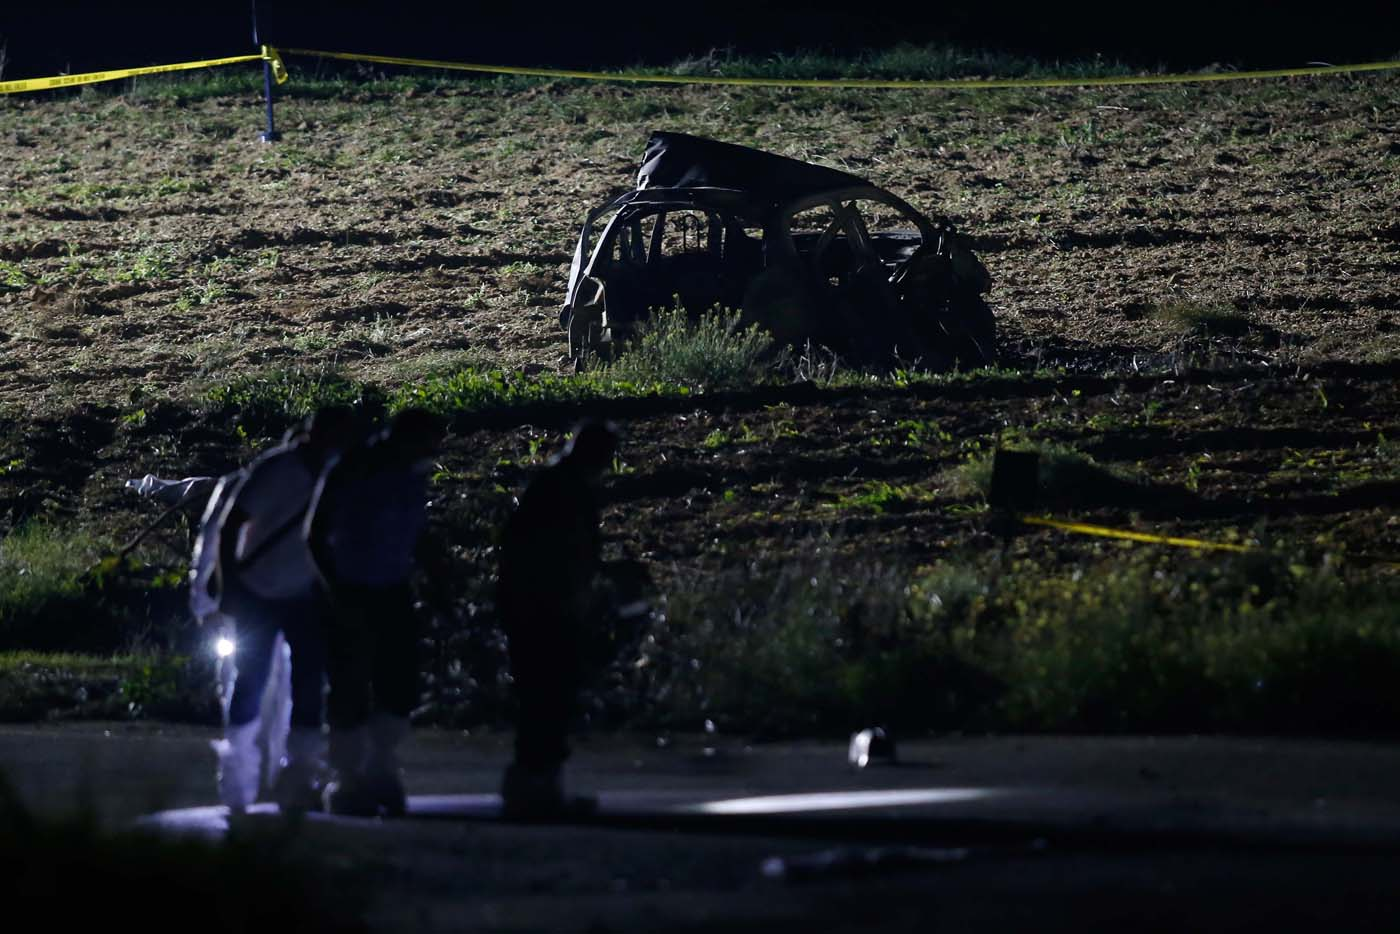 Forensic experts use lights as they look for evidence on a road near a field after a powerful bomb blew up a car (Rear) and killed investigative journalist Daphne Caruana Galizia in Bidnija, Malta, October 16, 2017. REUTERS/Darrin Zammit Lupi